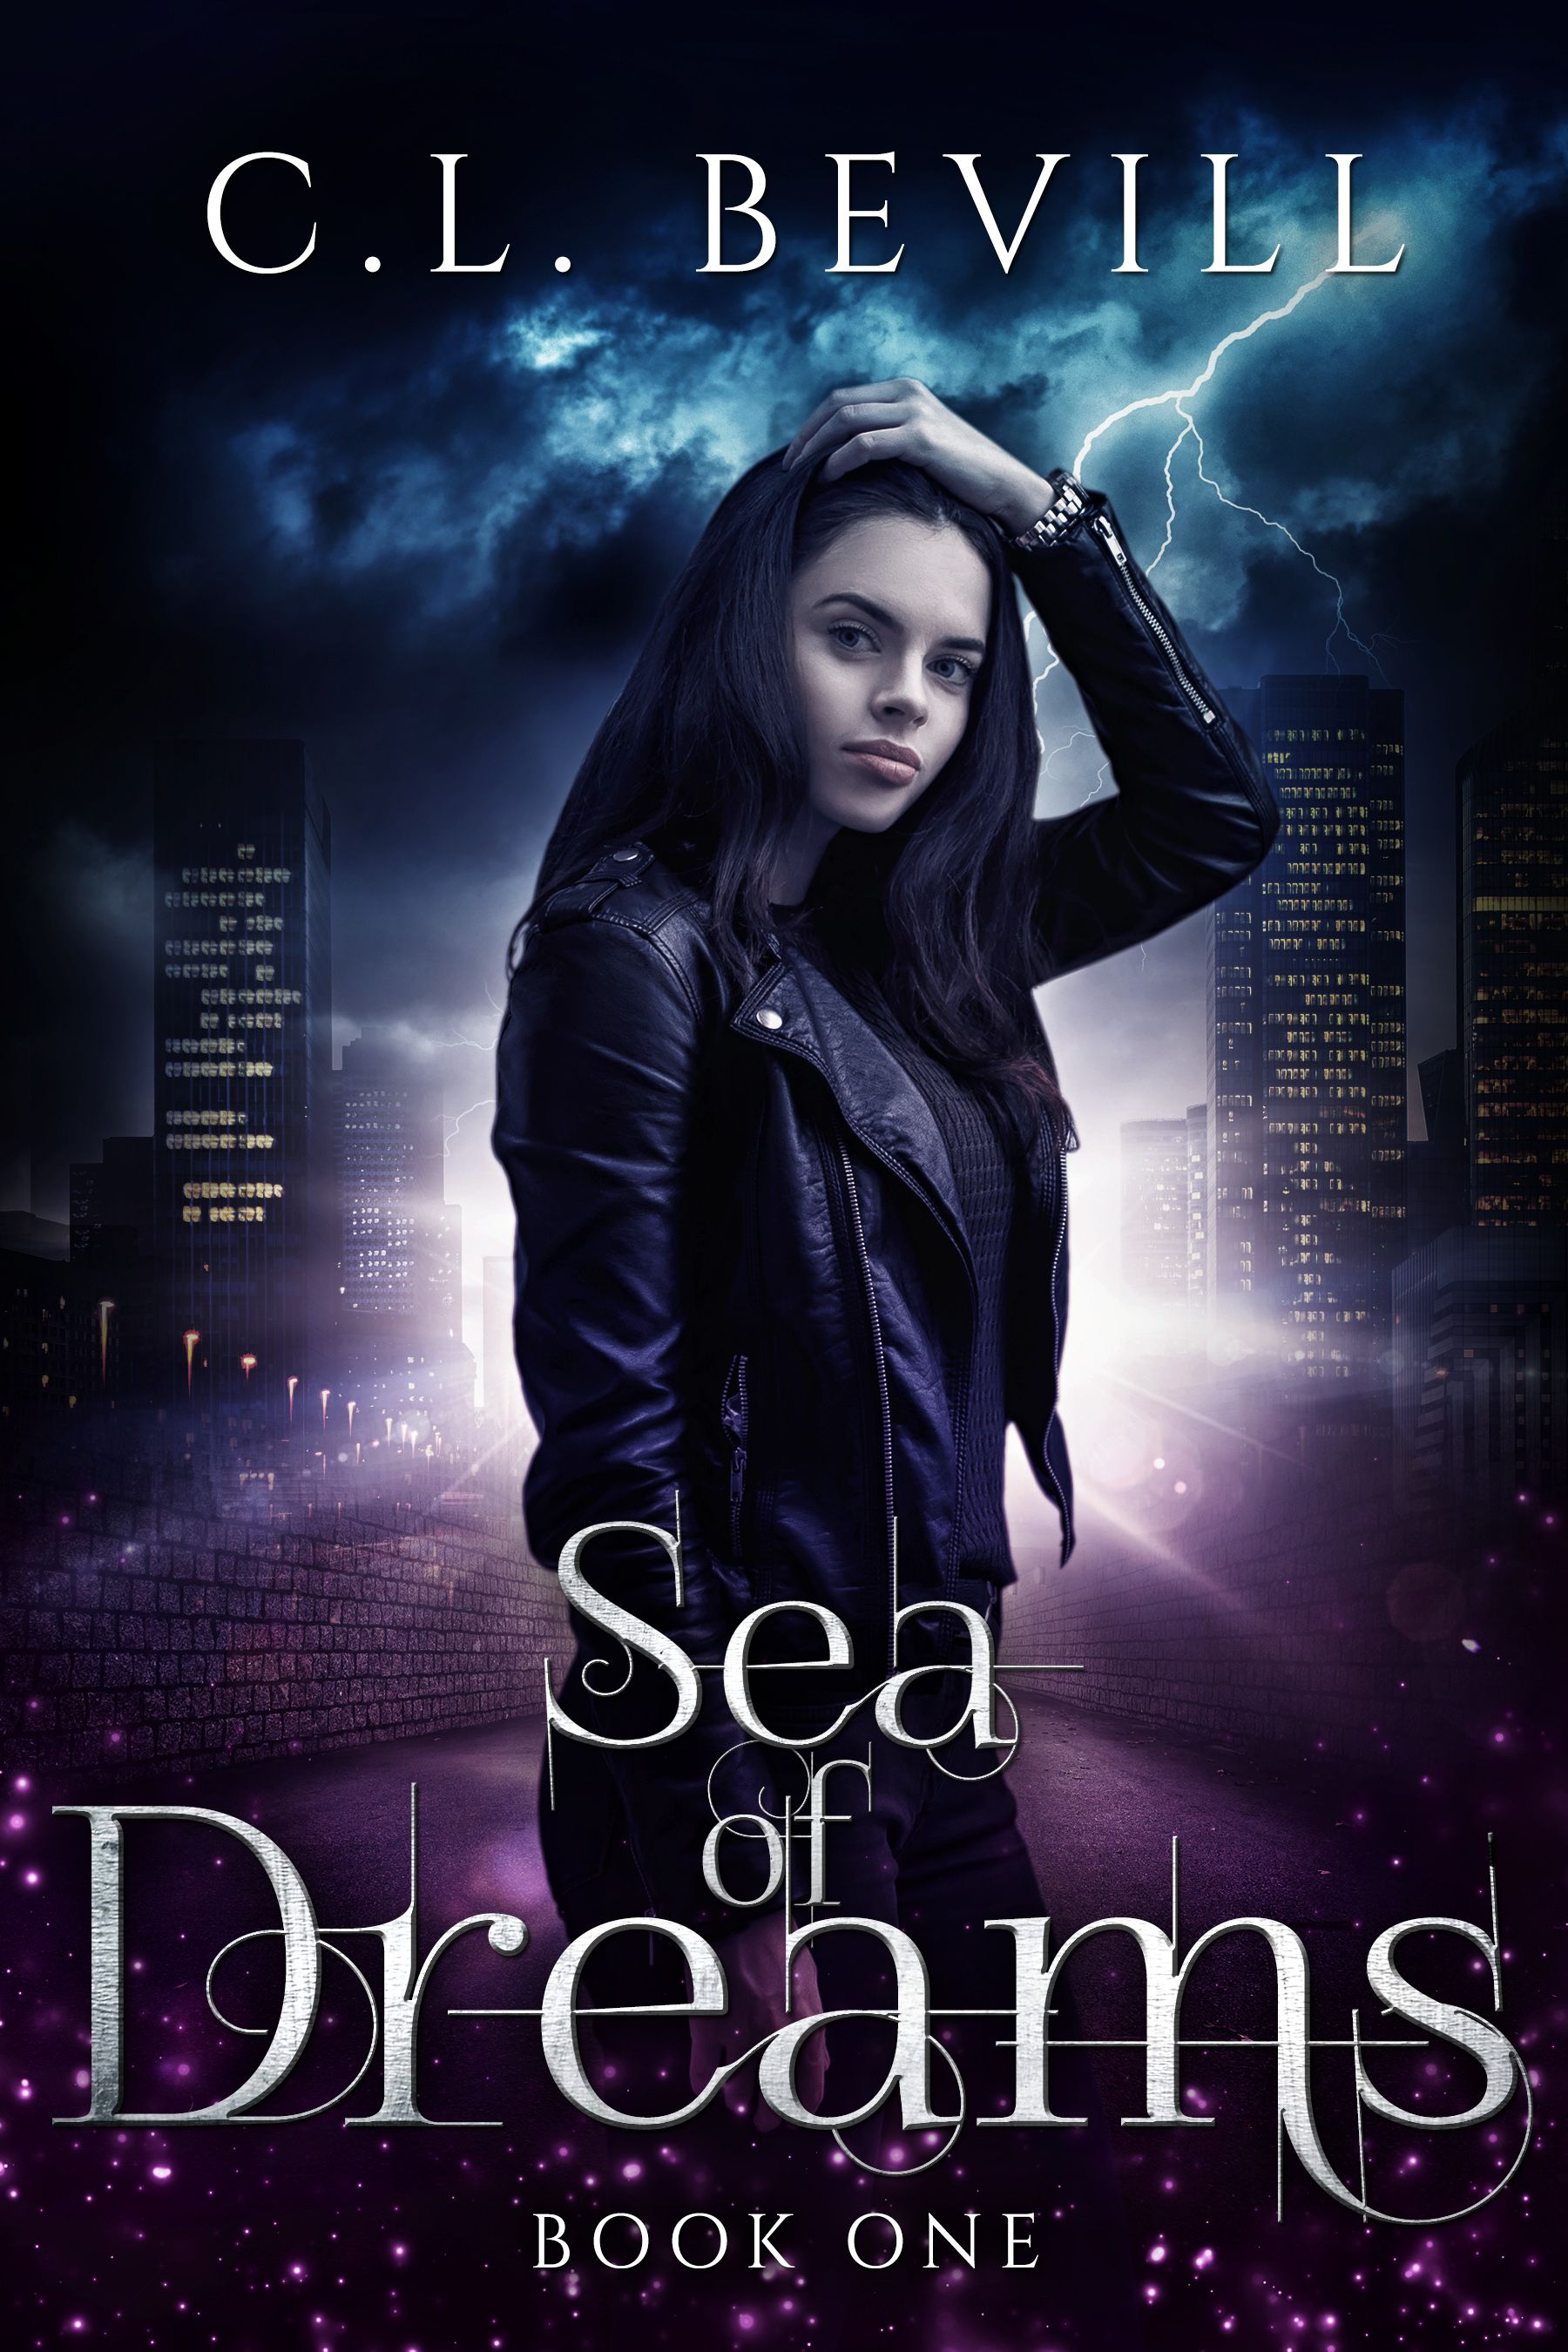 Book Cover Fantasy Jobs : Paranormal urban fantasy book cover design by milo